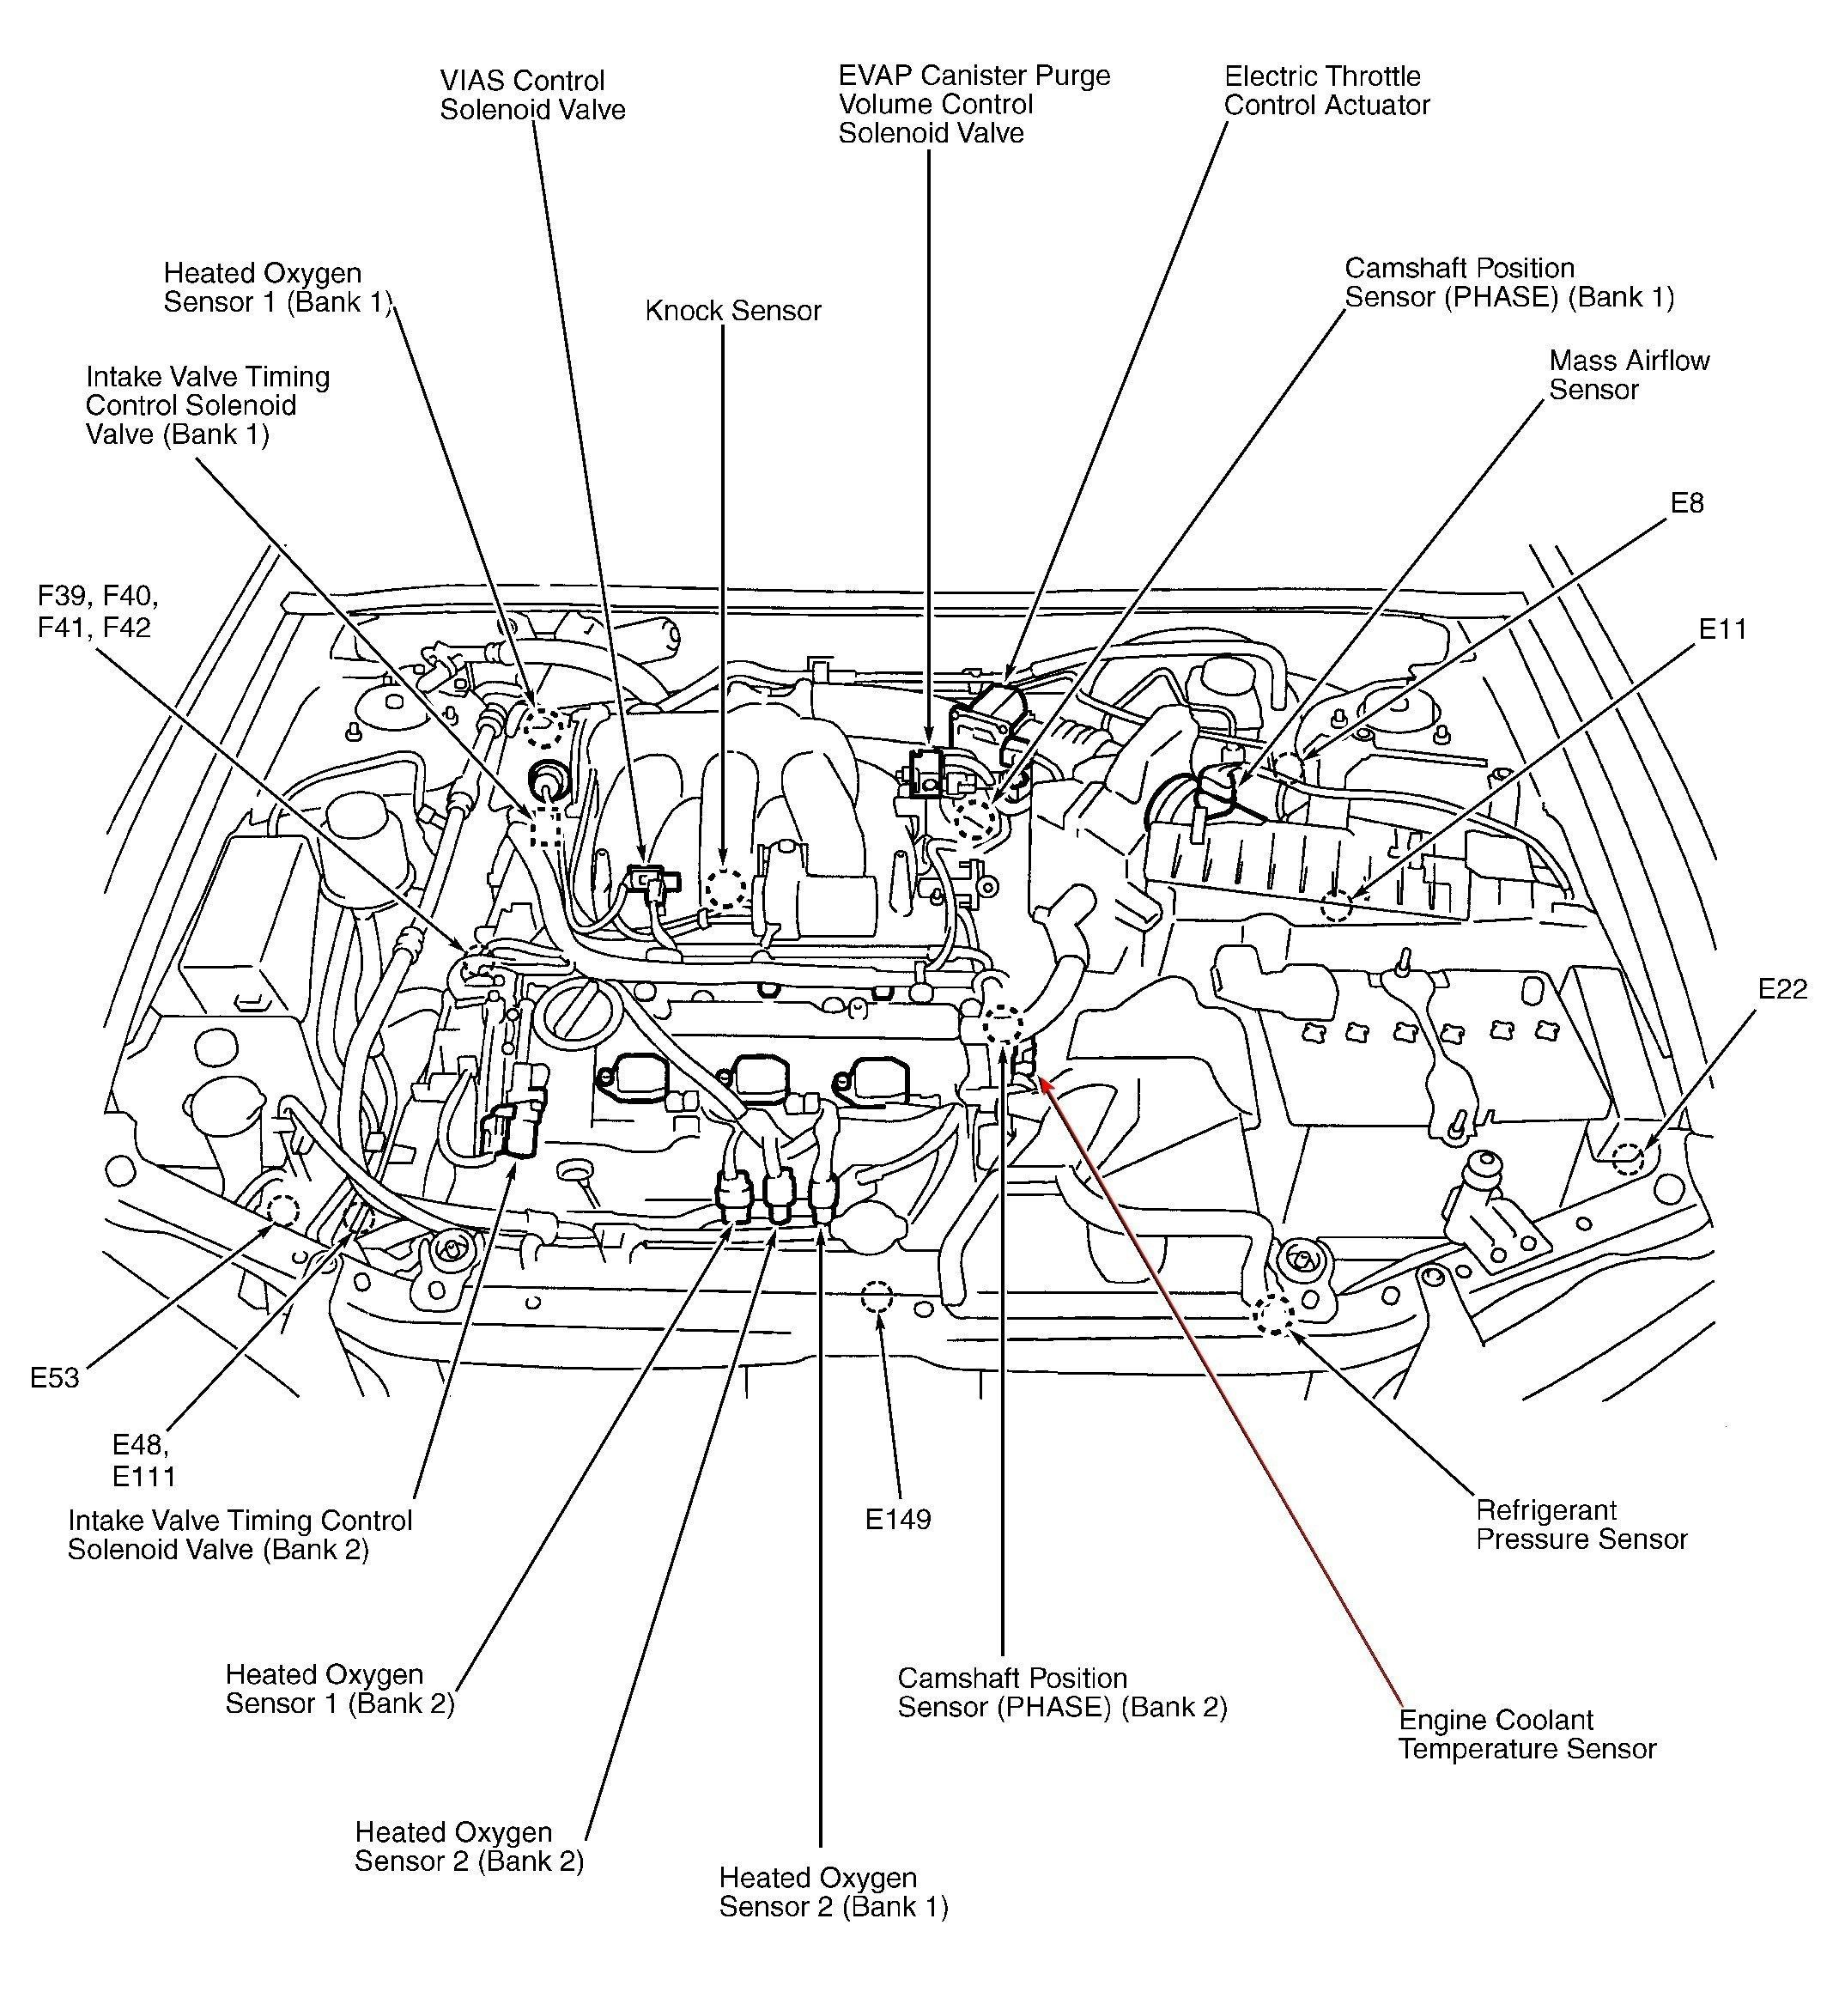 Wiring Diagram For Nissan Pathfinder Le Subwoofer